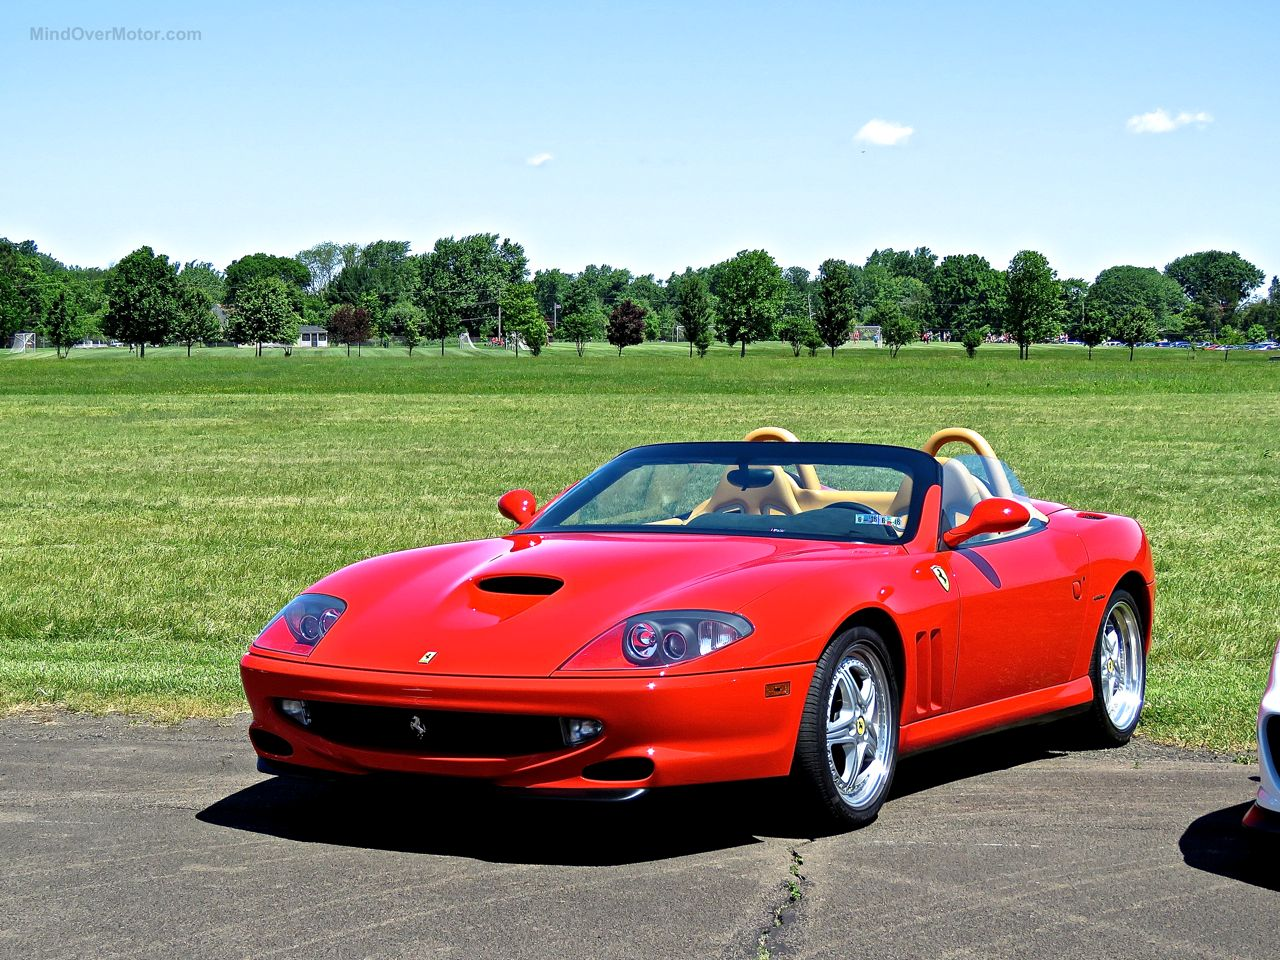 Ferrari 550 Barchetta at CF Charities